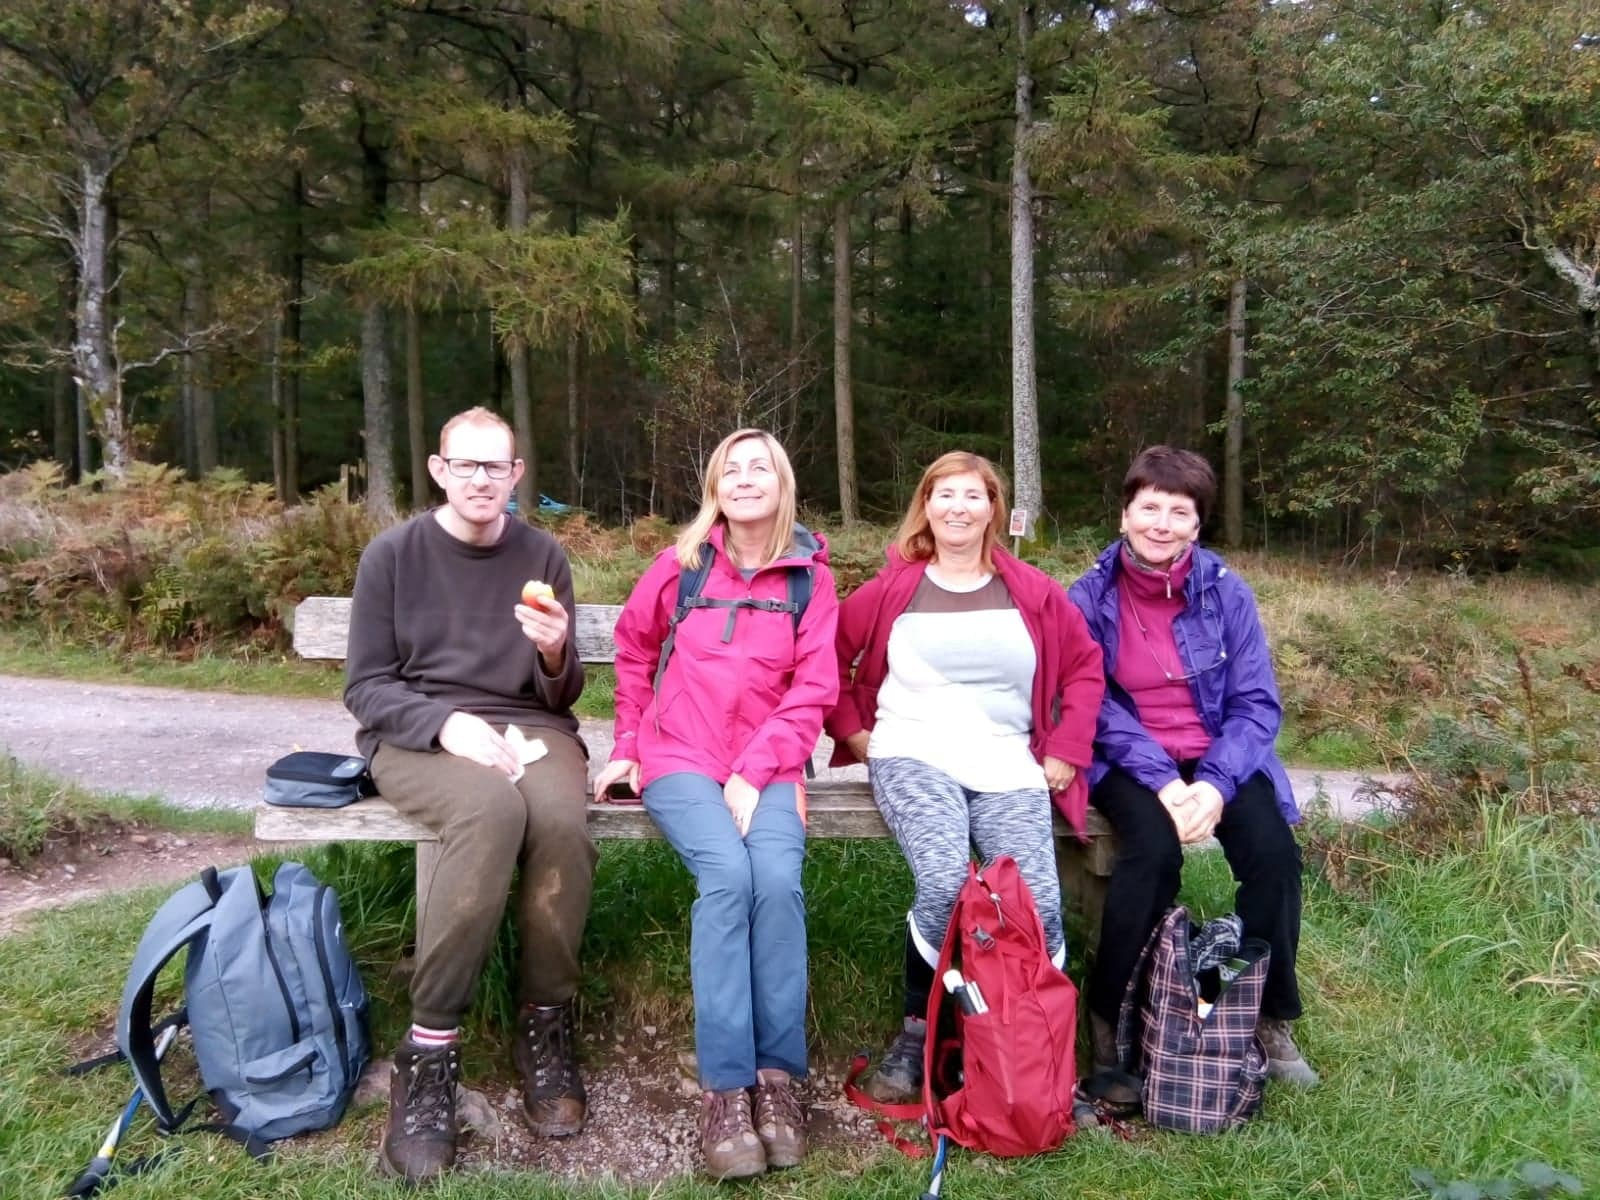 Four people sittong on a bench with woodland behind.